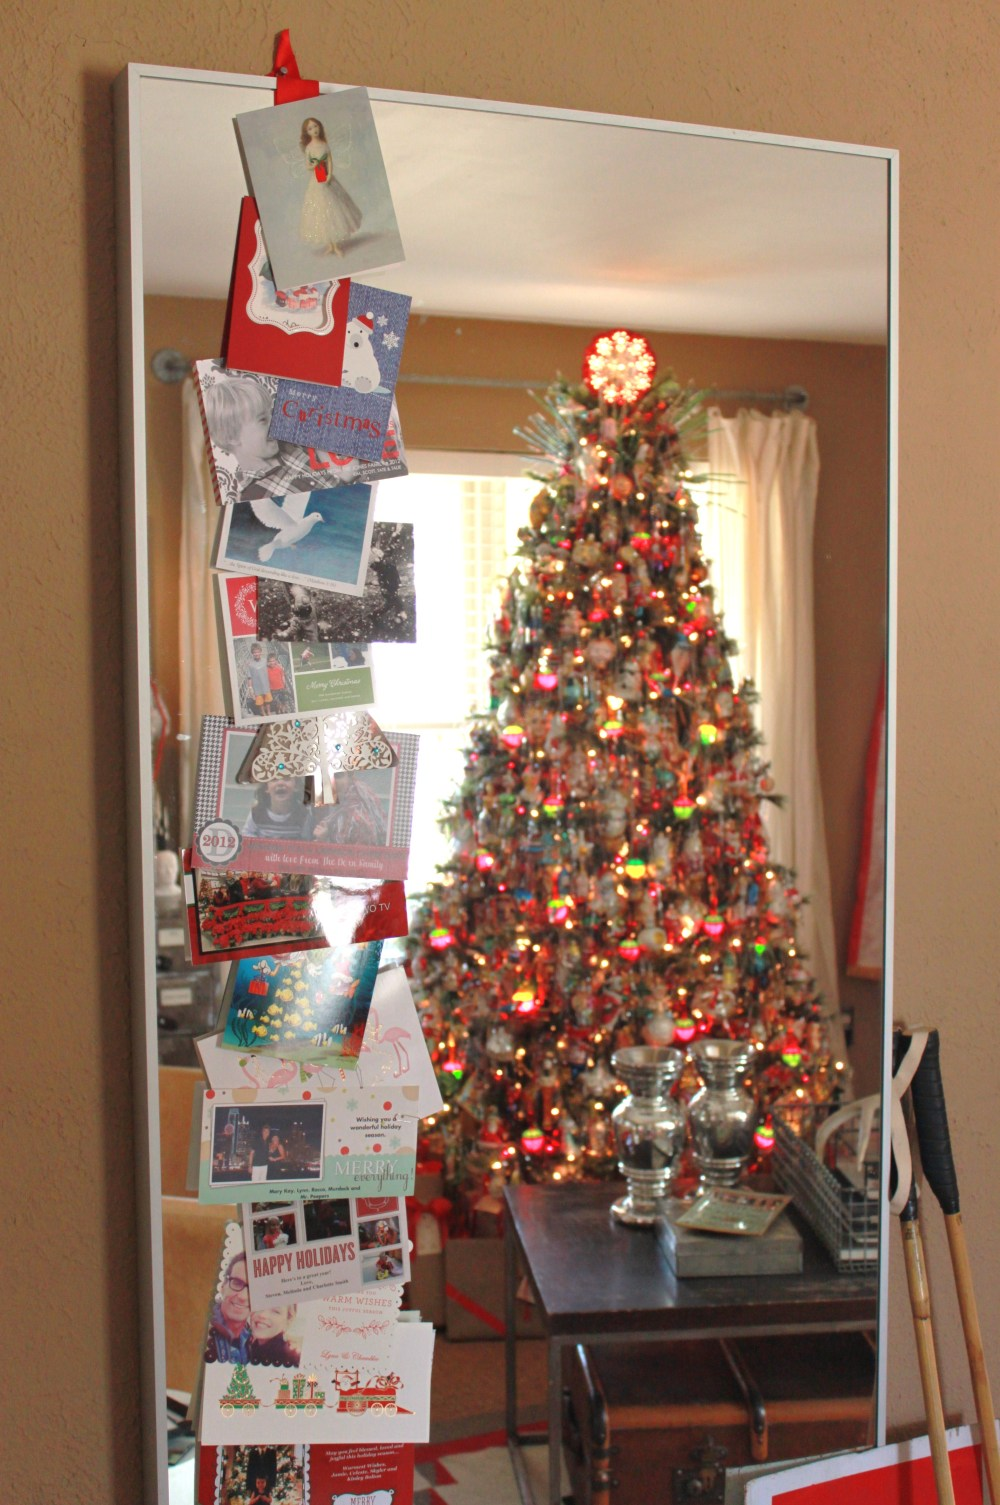 Christmas Cards Down Mirror in Living Room